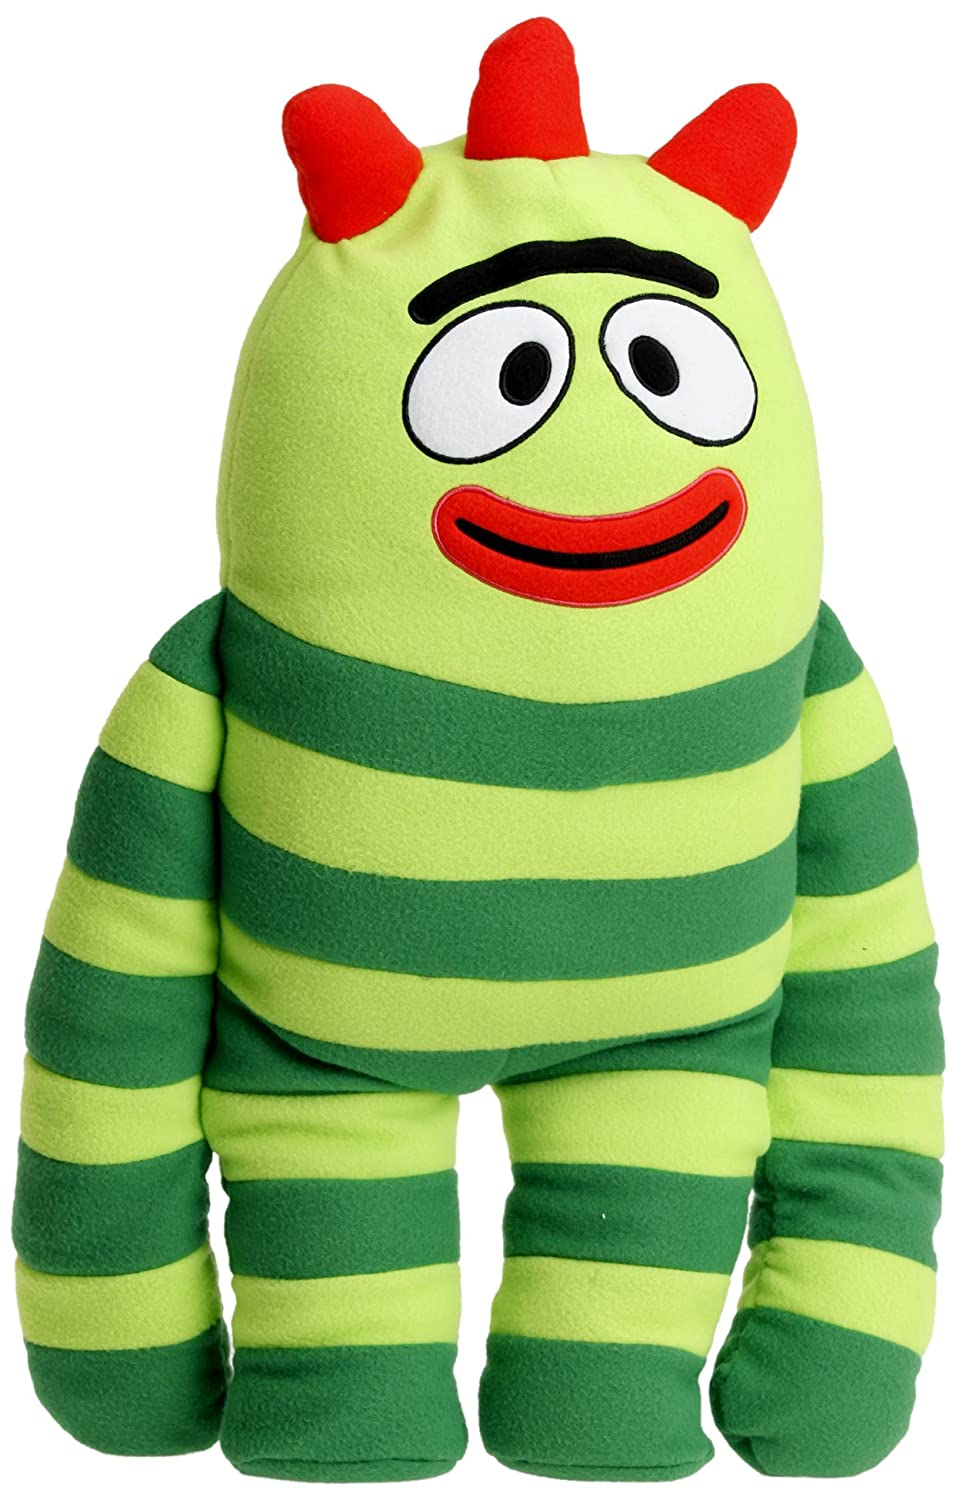 Amazoncom Yo Gabba Gabba Brobee Pillow Discontinued by